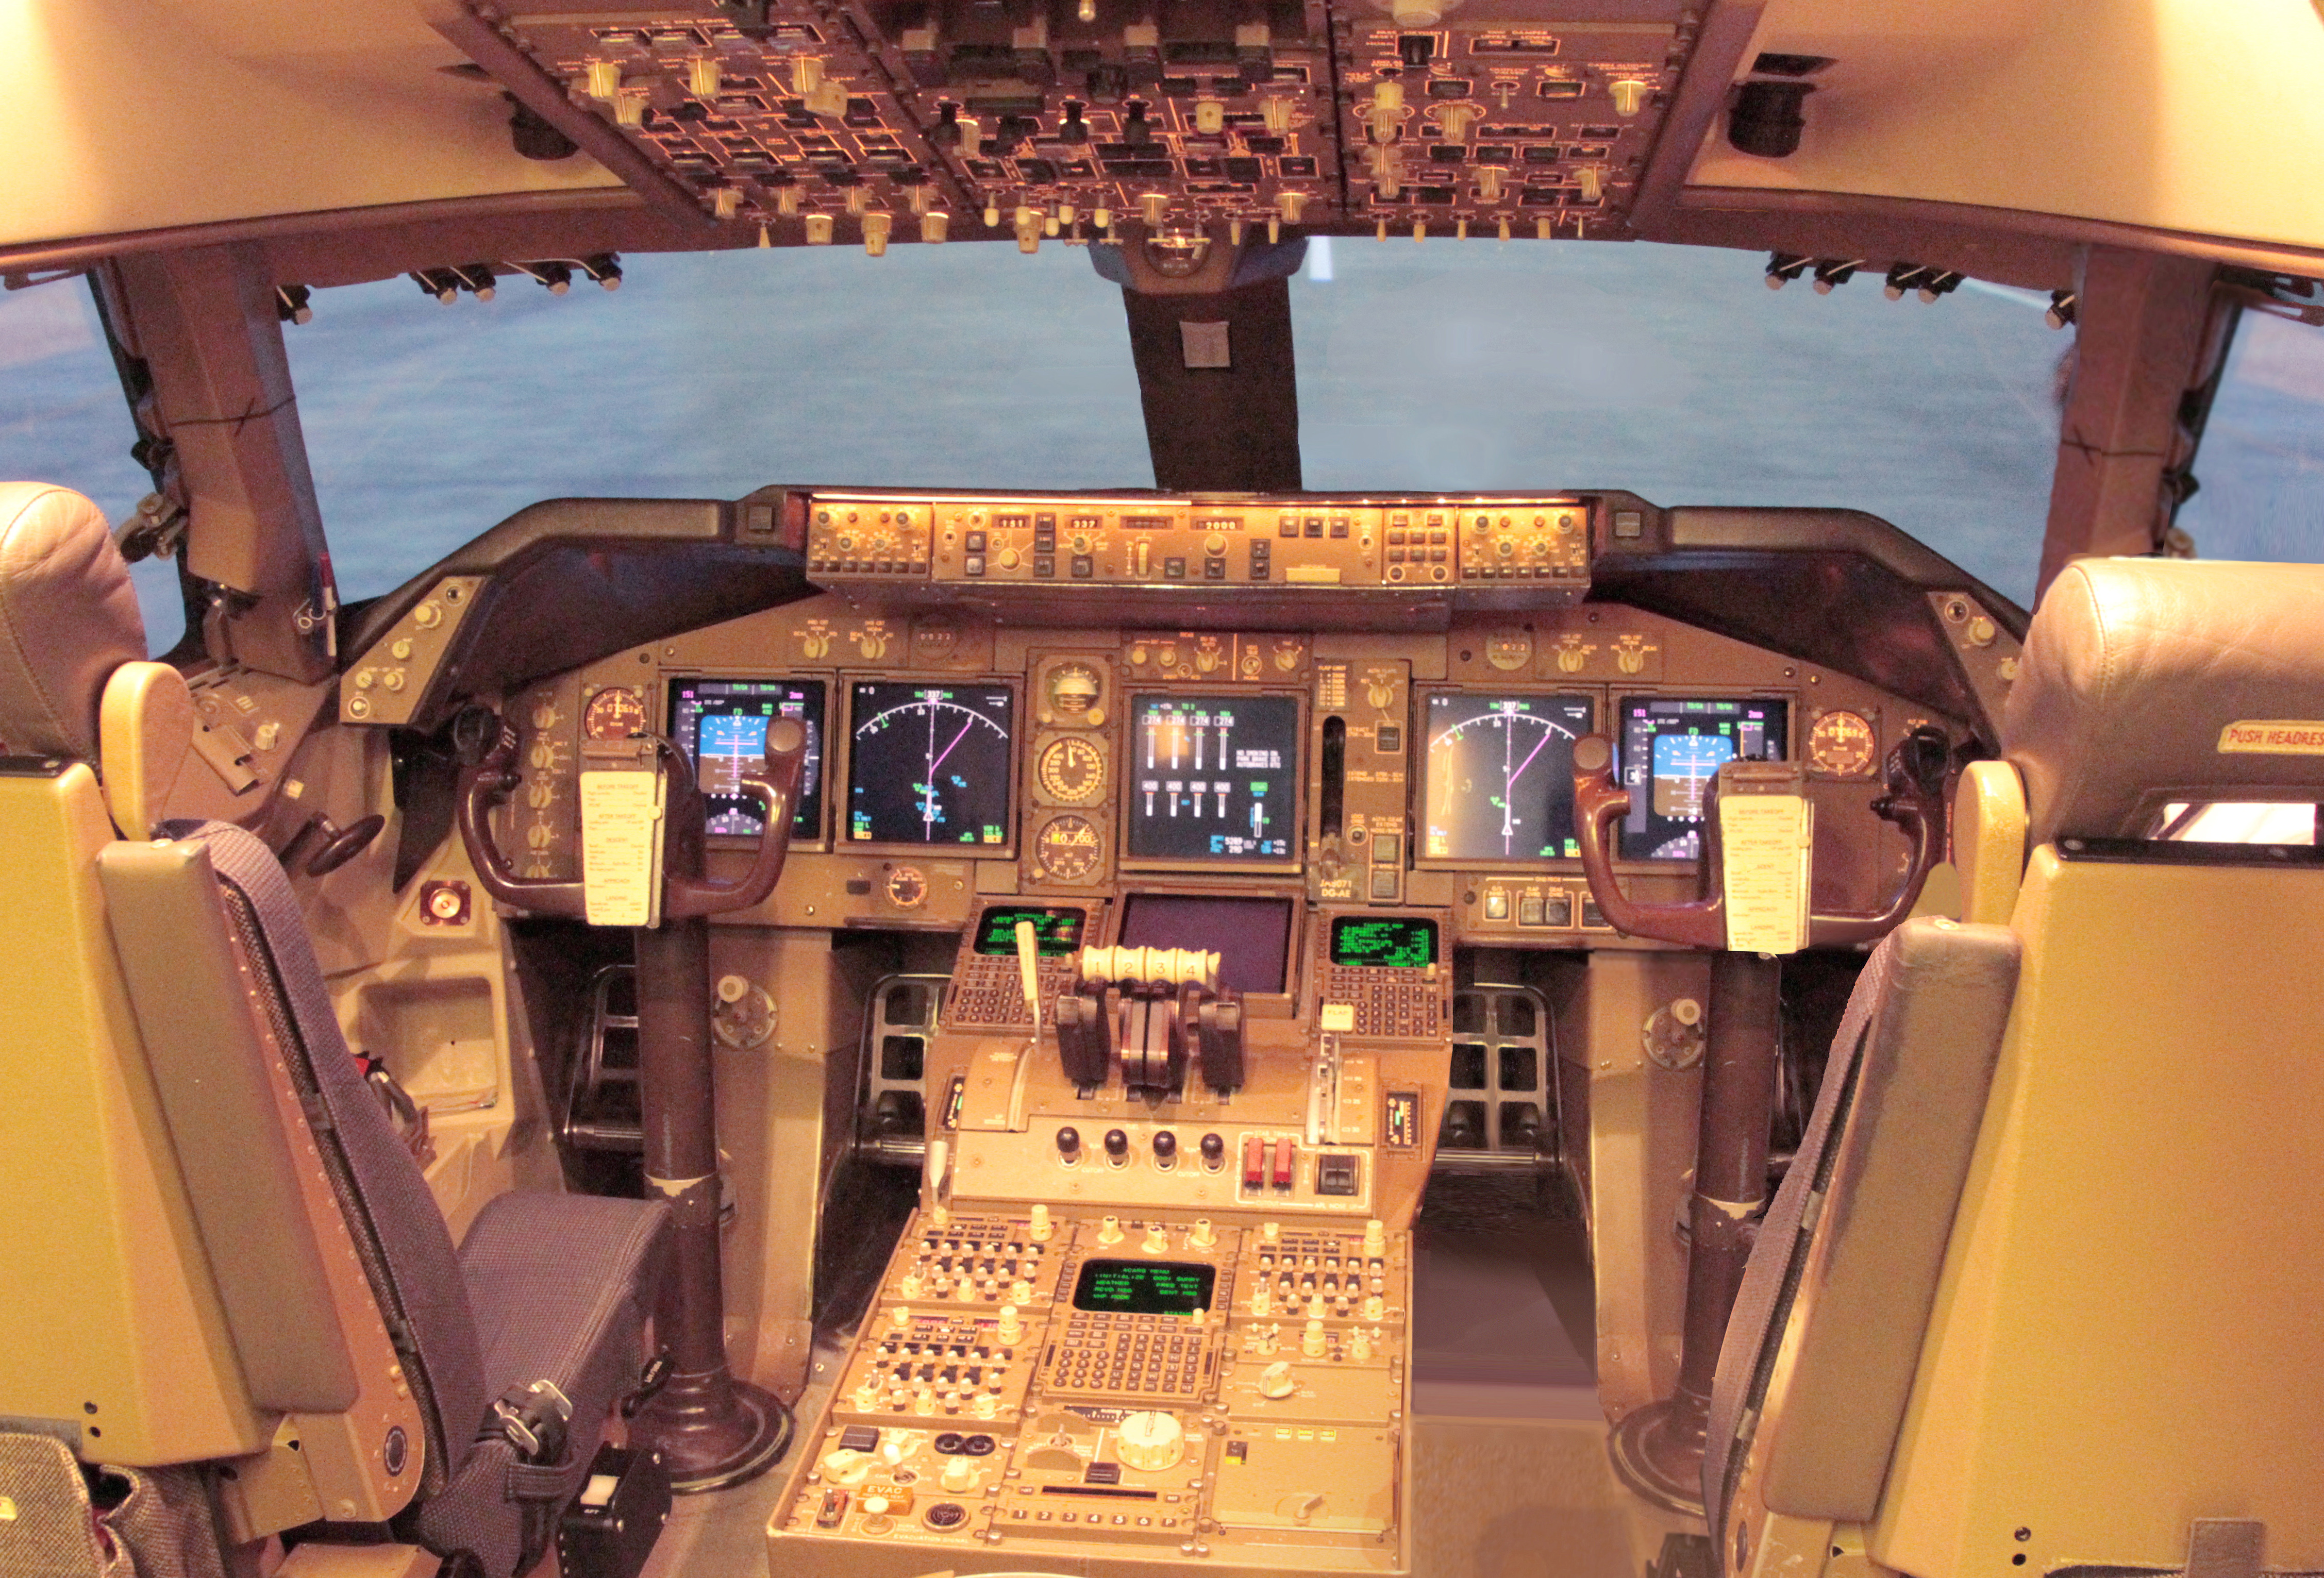 Cockpit of modern jet airliner, showcasing digital displays and instruments. Light enters through the windshield.